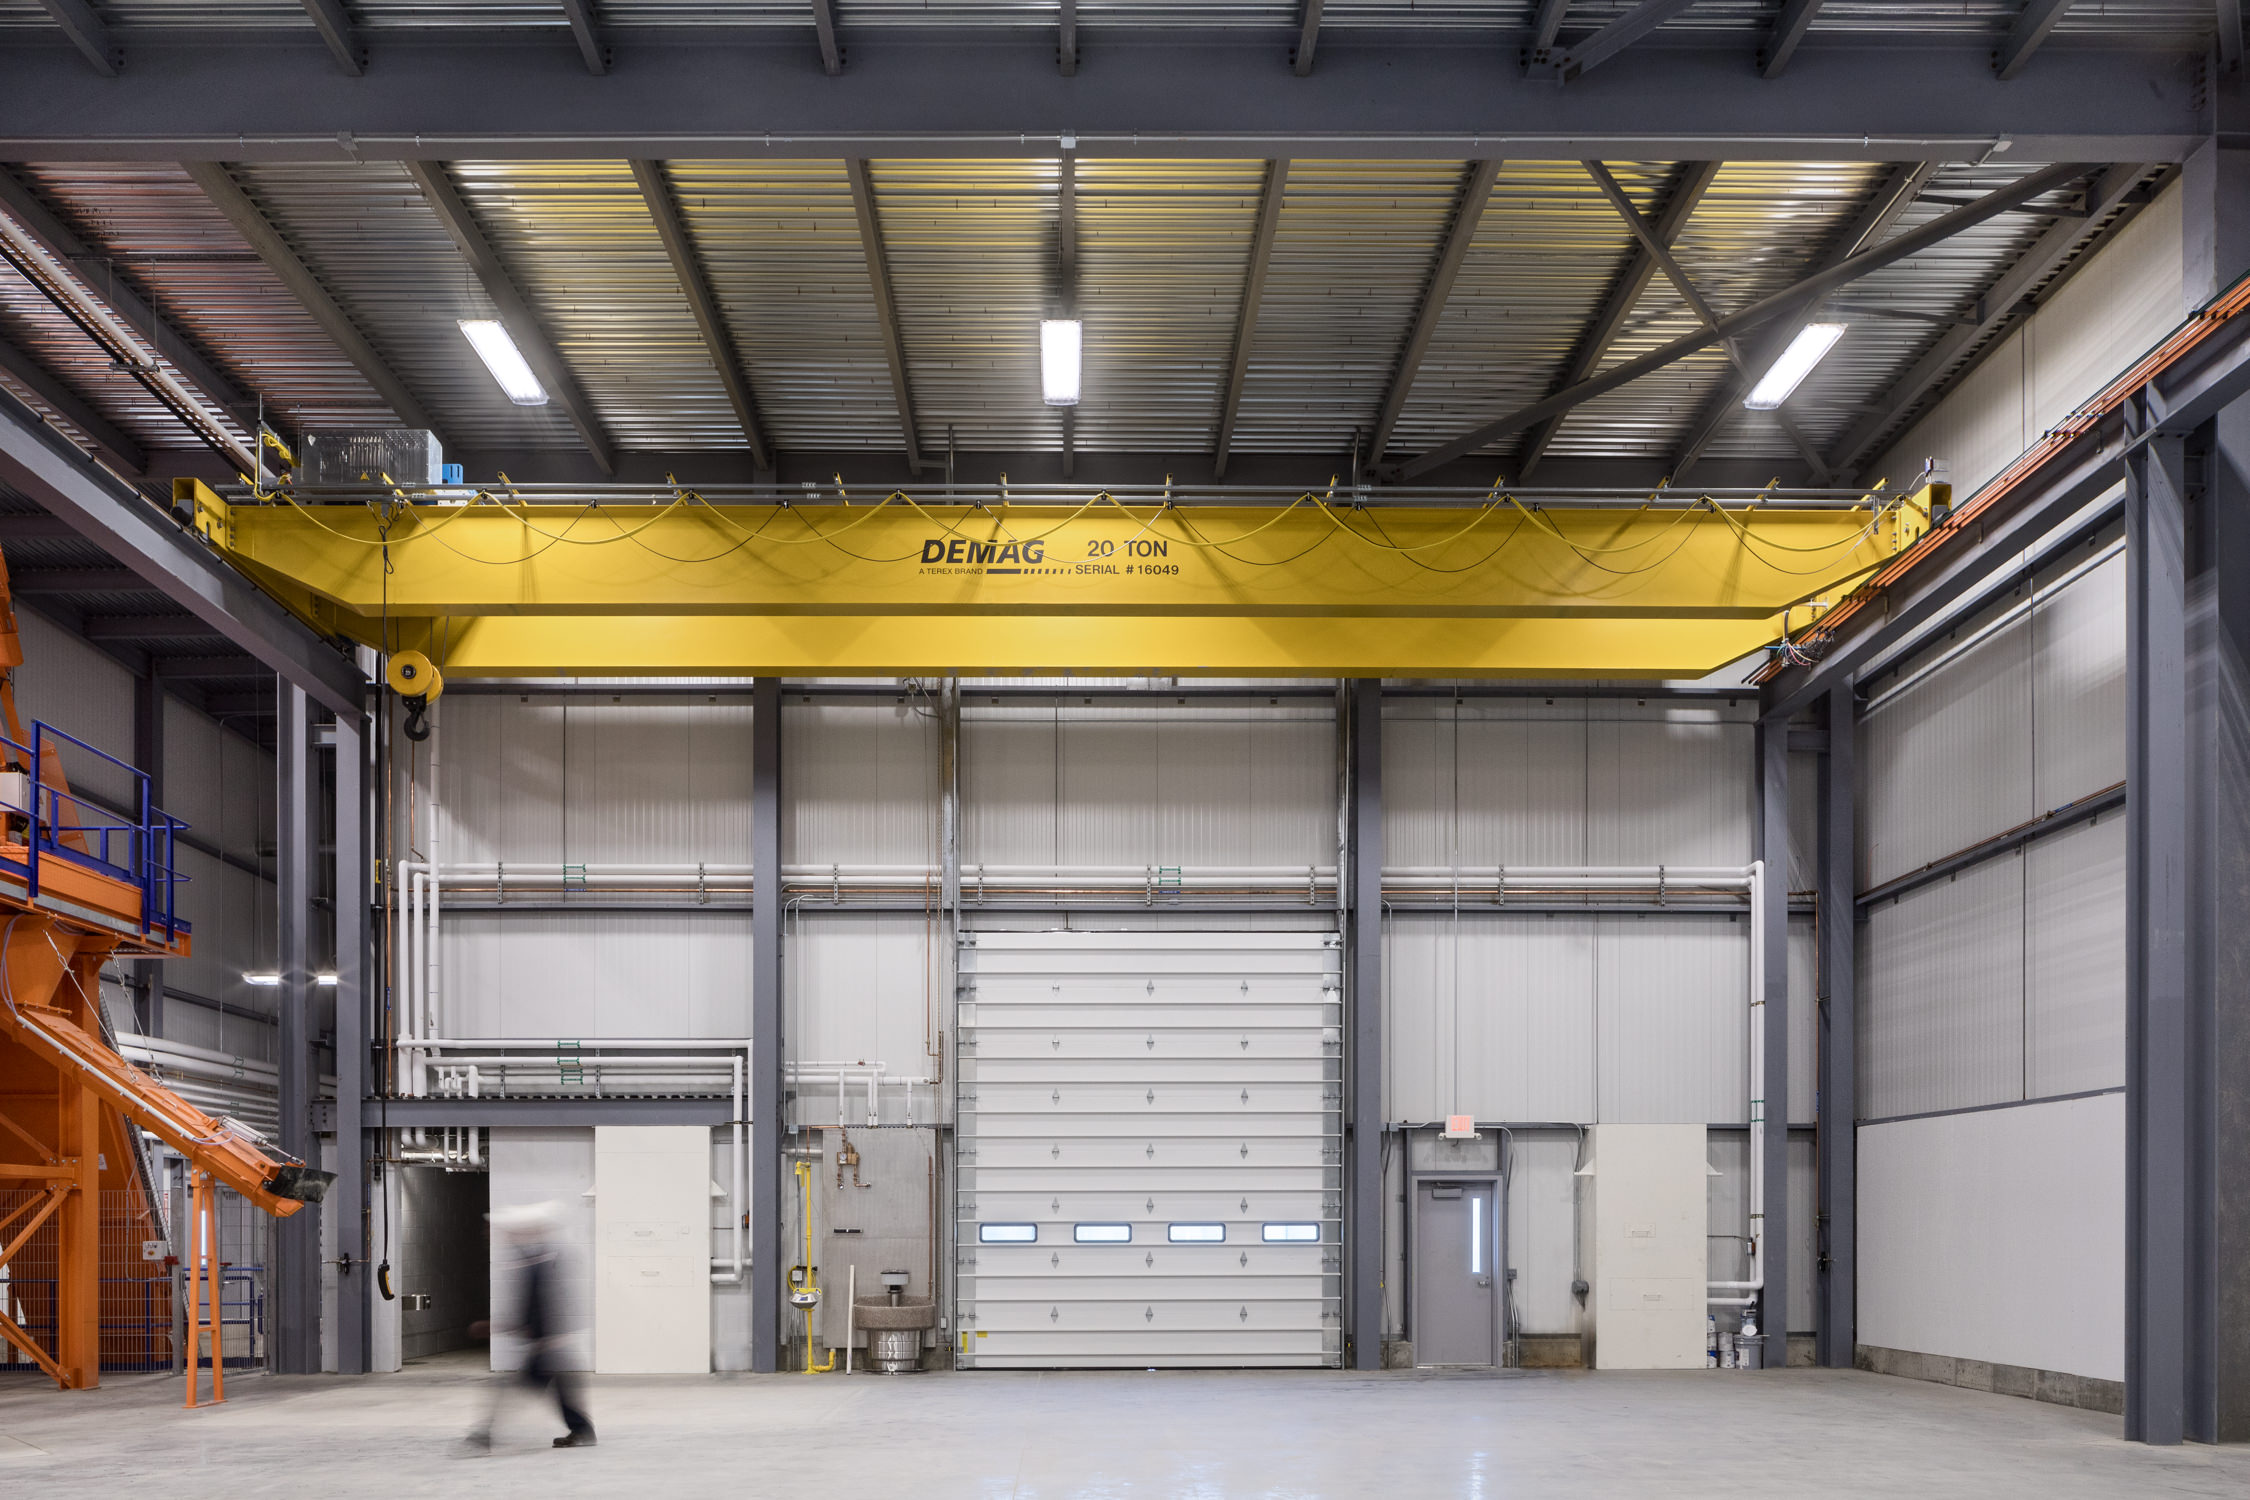 Photo of a blurred worker walking through a warehouse in the Camp Precast facility in Milton Vermont taken by commercial photographer Stina Booth